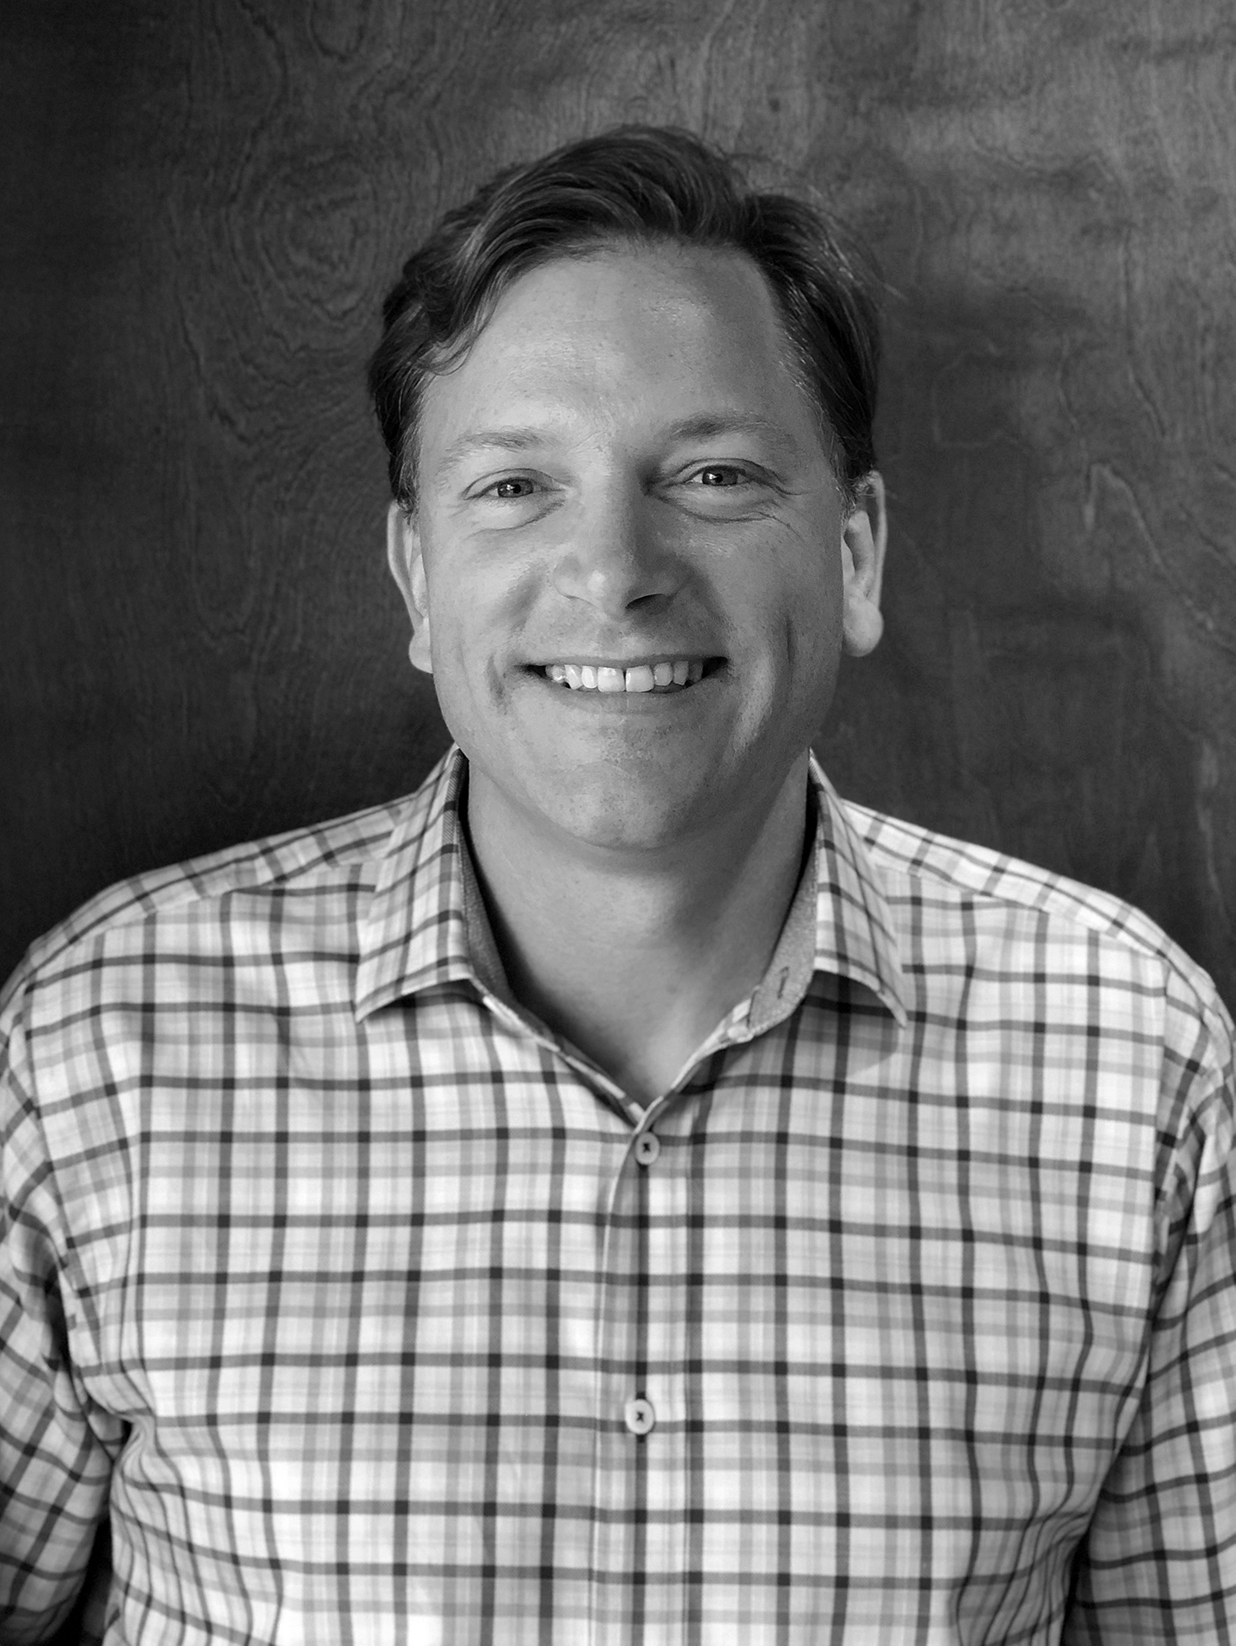 JOHN PLAGEMANAIA, NCARB - jplageman@plagemanarchitecture.comRooted deeply in his past as a stone mason, his approach to designing buildings is crafted and tailored for each client.